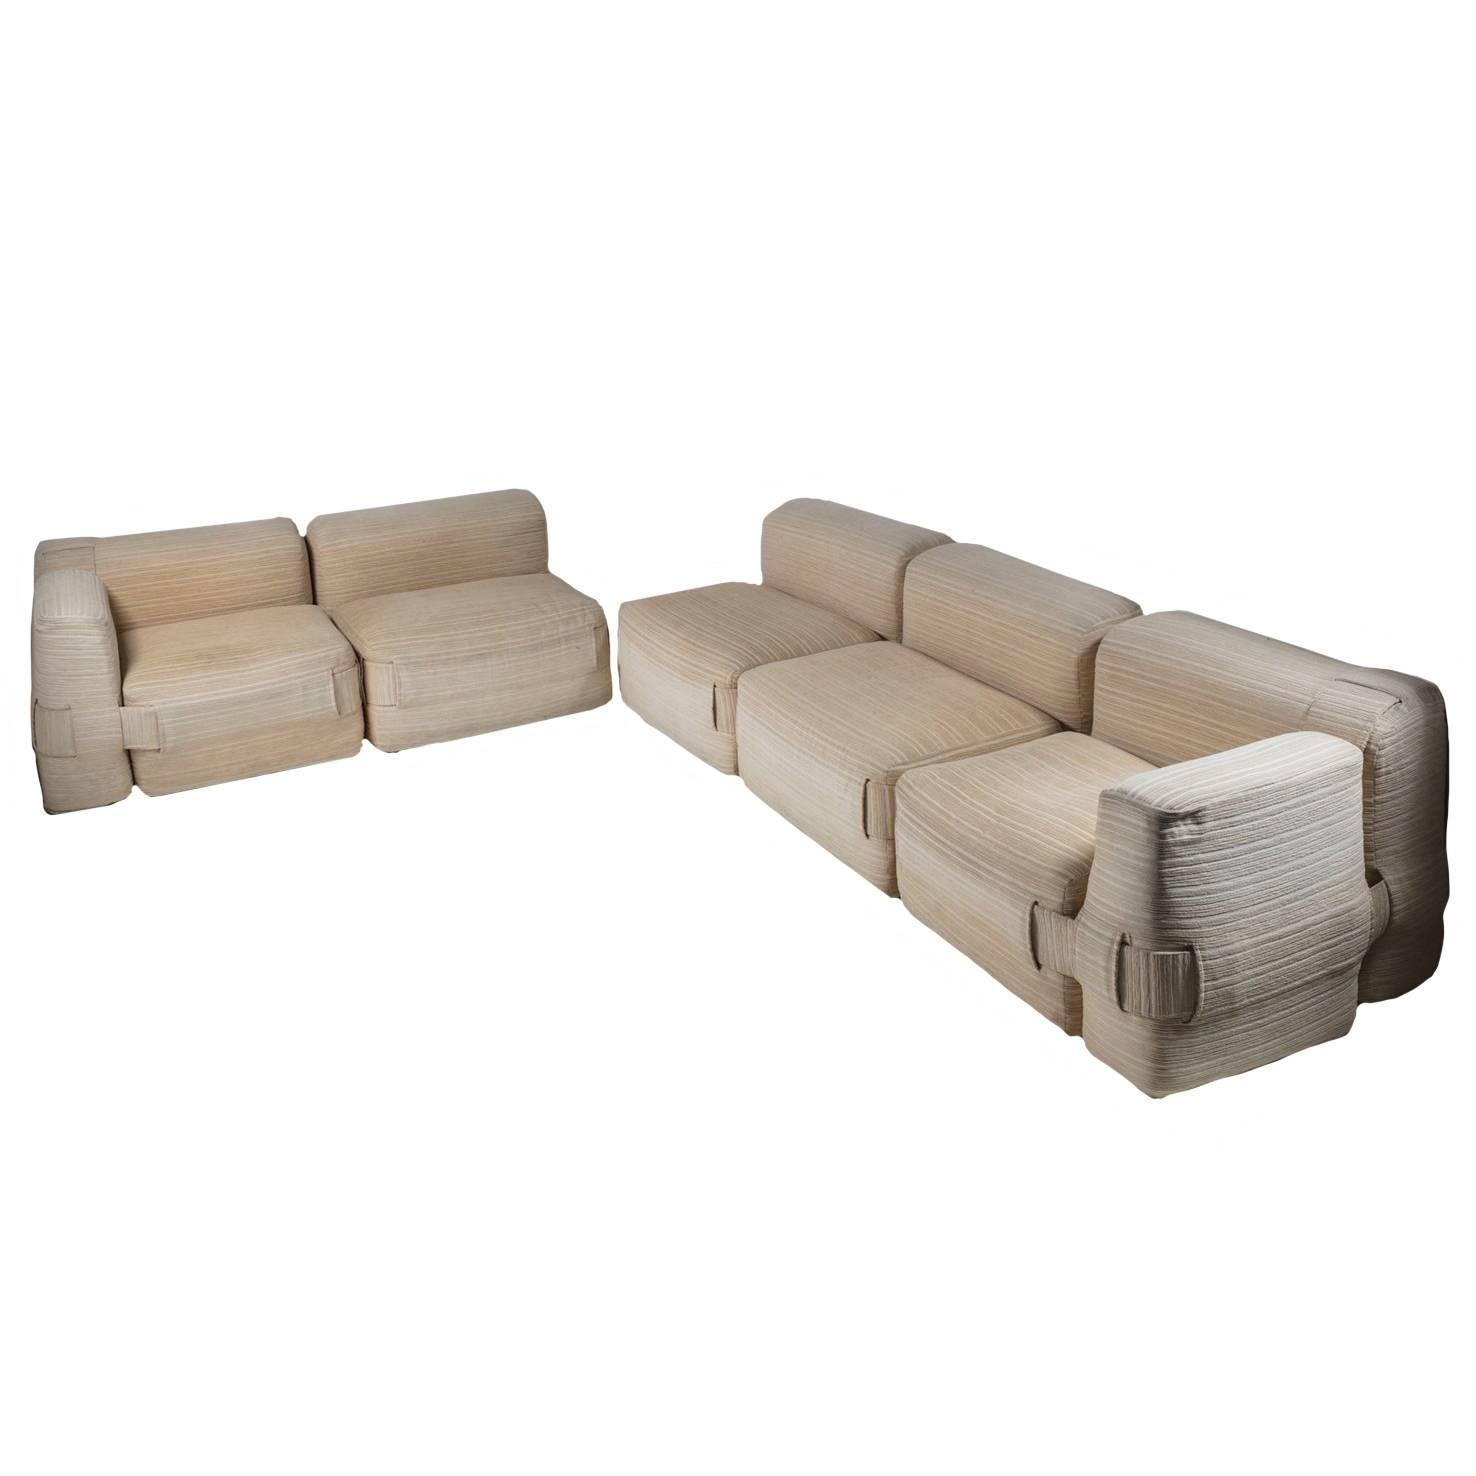 "932"" Sofa Setmario Bellini For Cassina For Sale At 1Stdibs within Bellini Sofas"